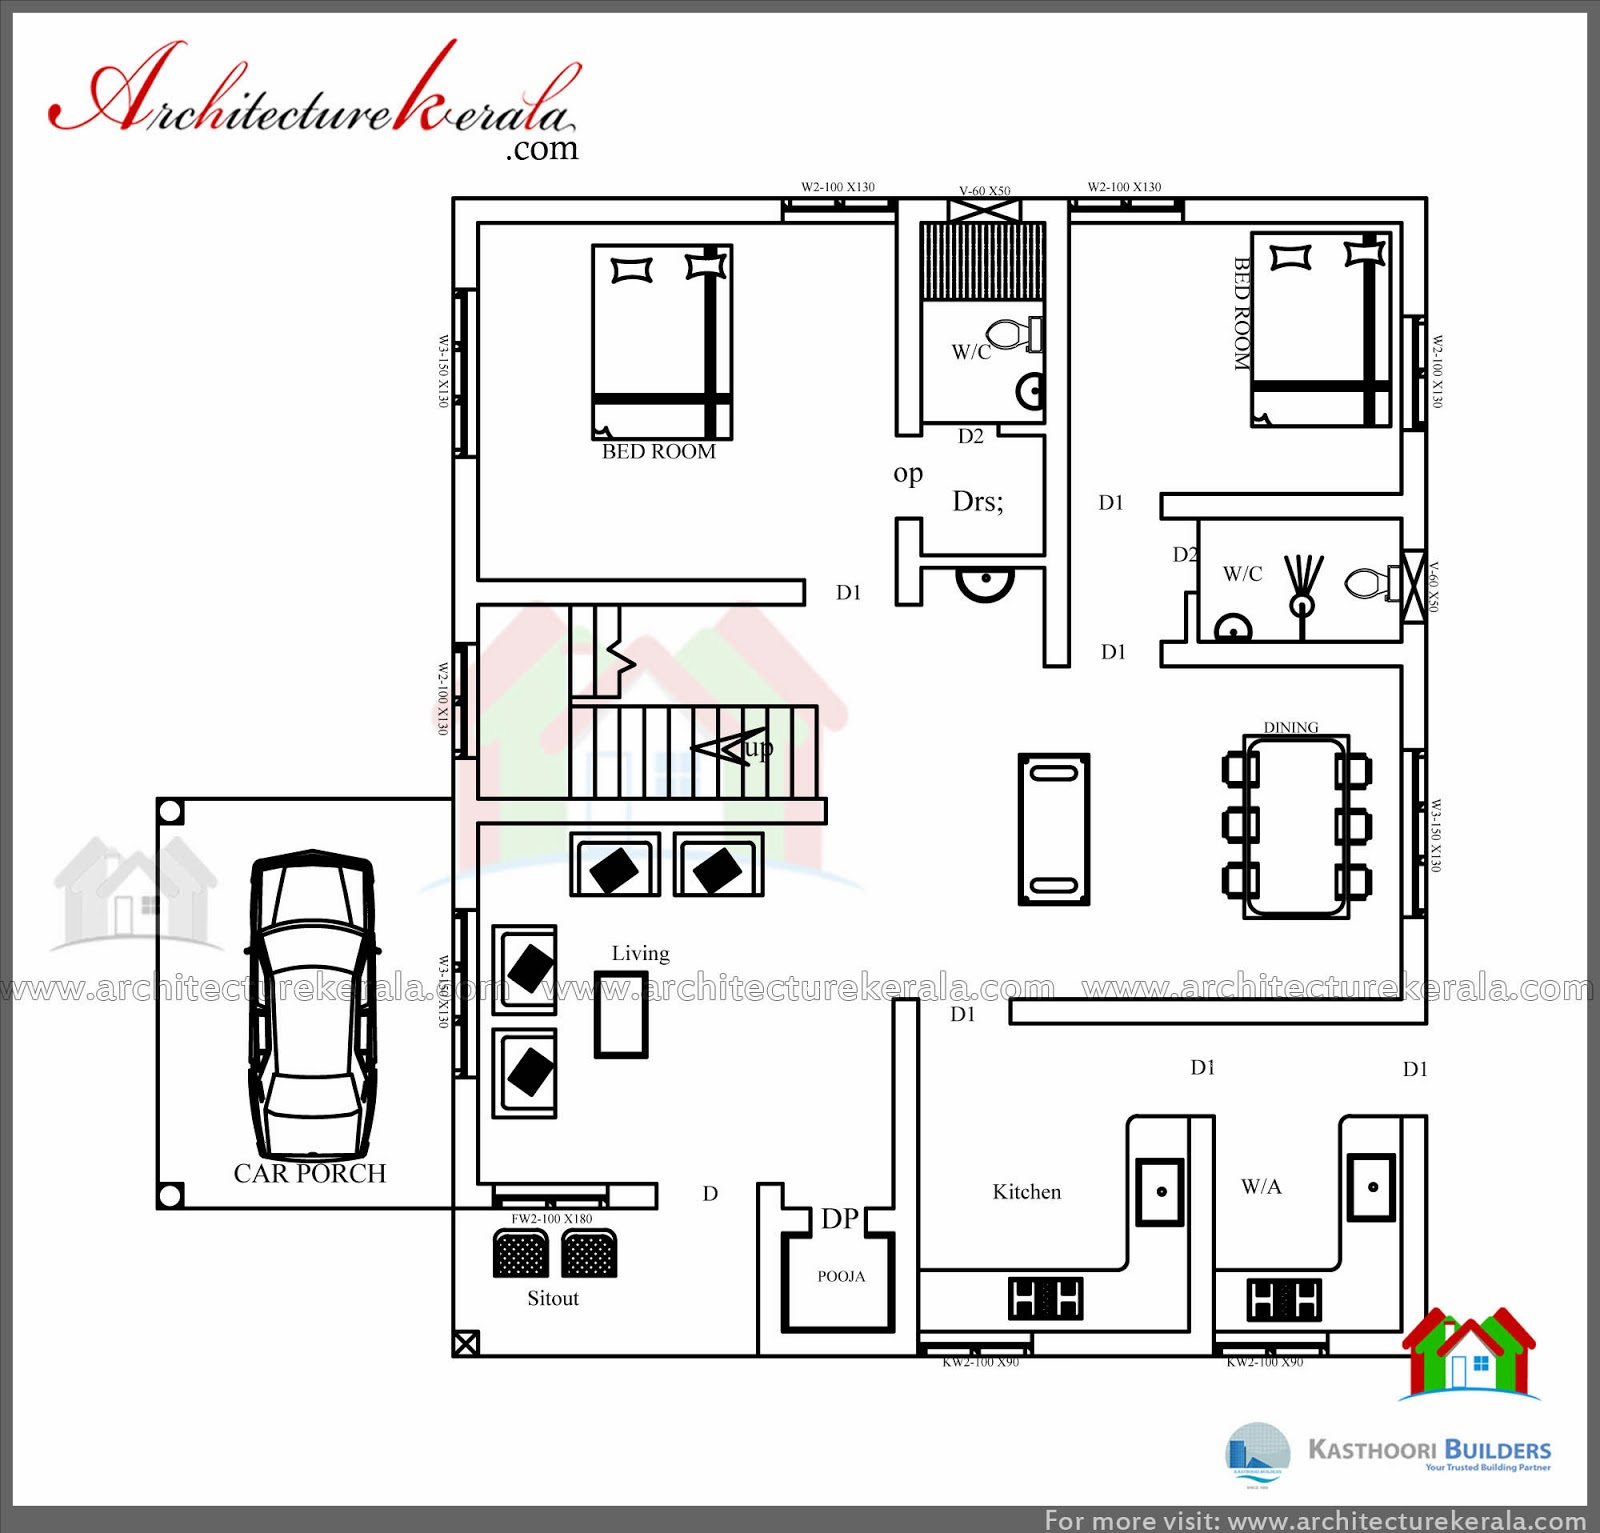 Low cost 3 bedroom kerala house plan with elevation free for Low cost per square foot house plans